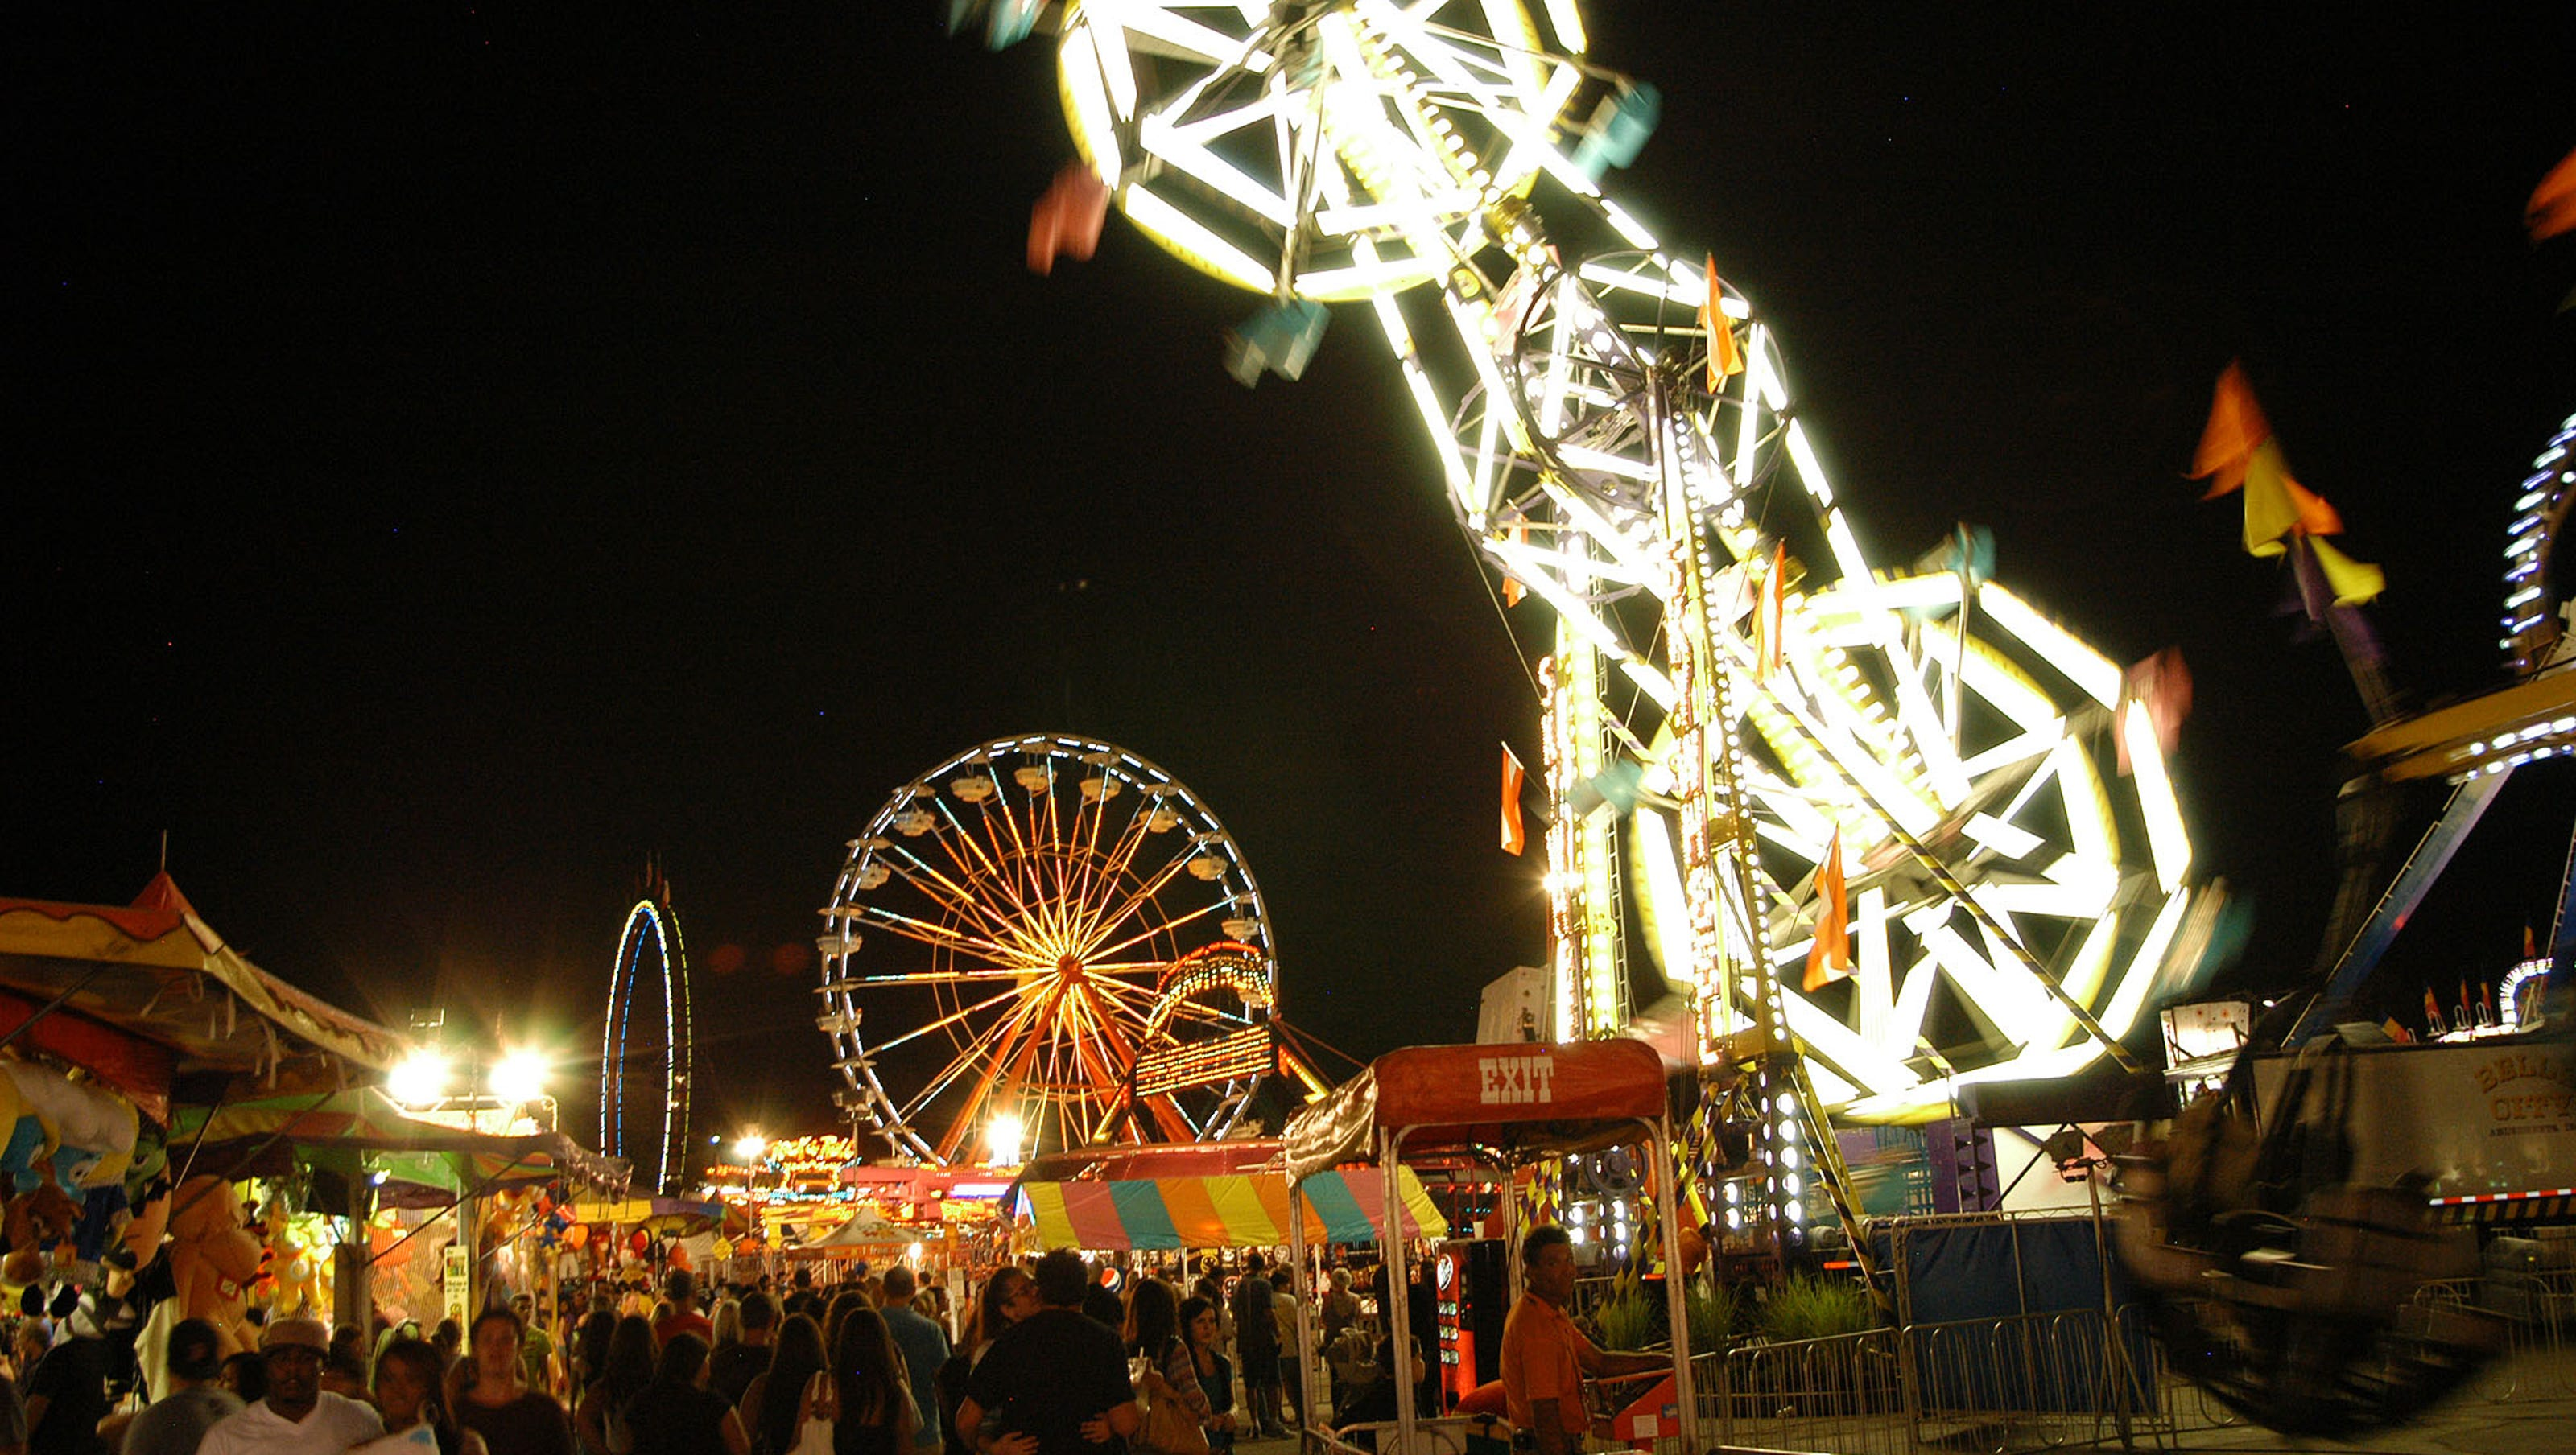 Iowa state fair dates in Australia